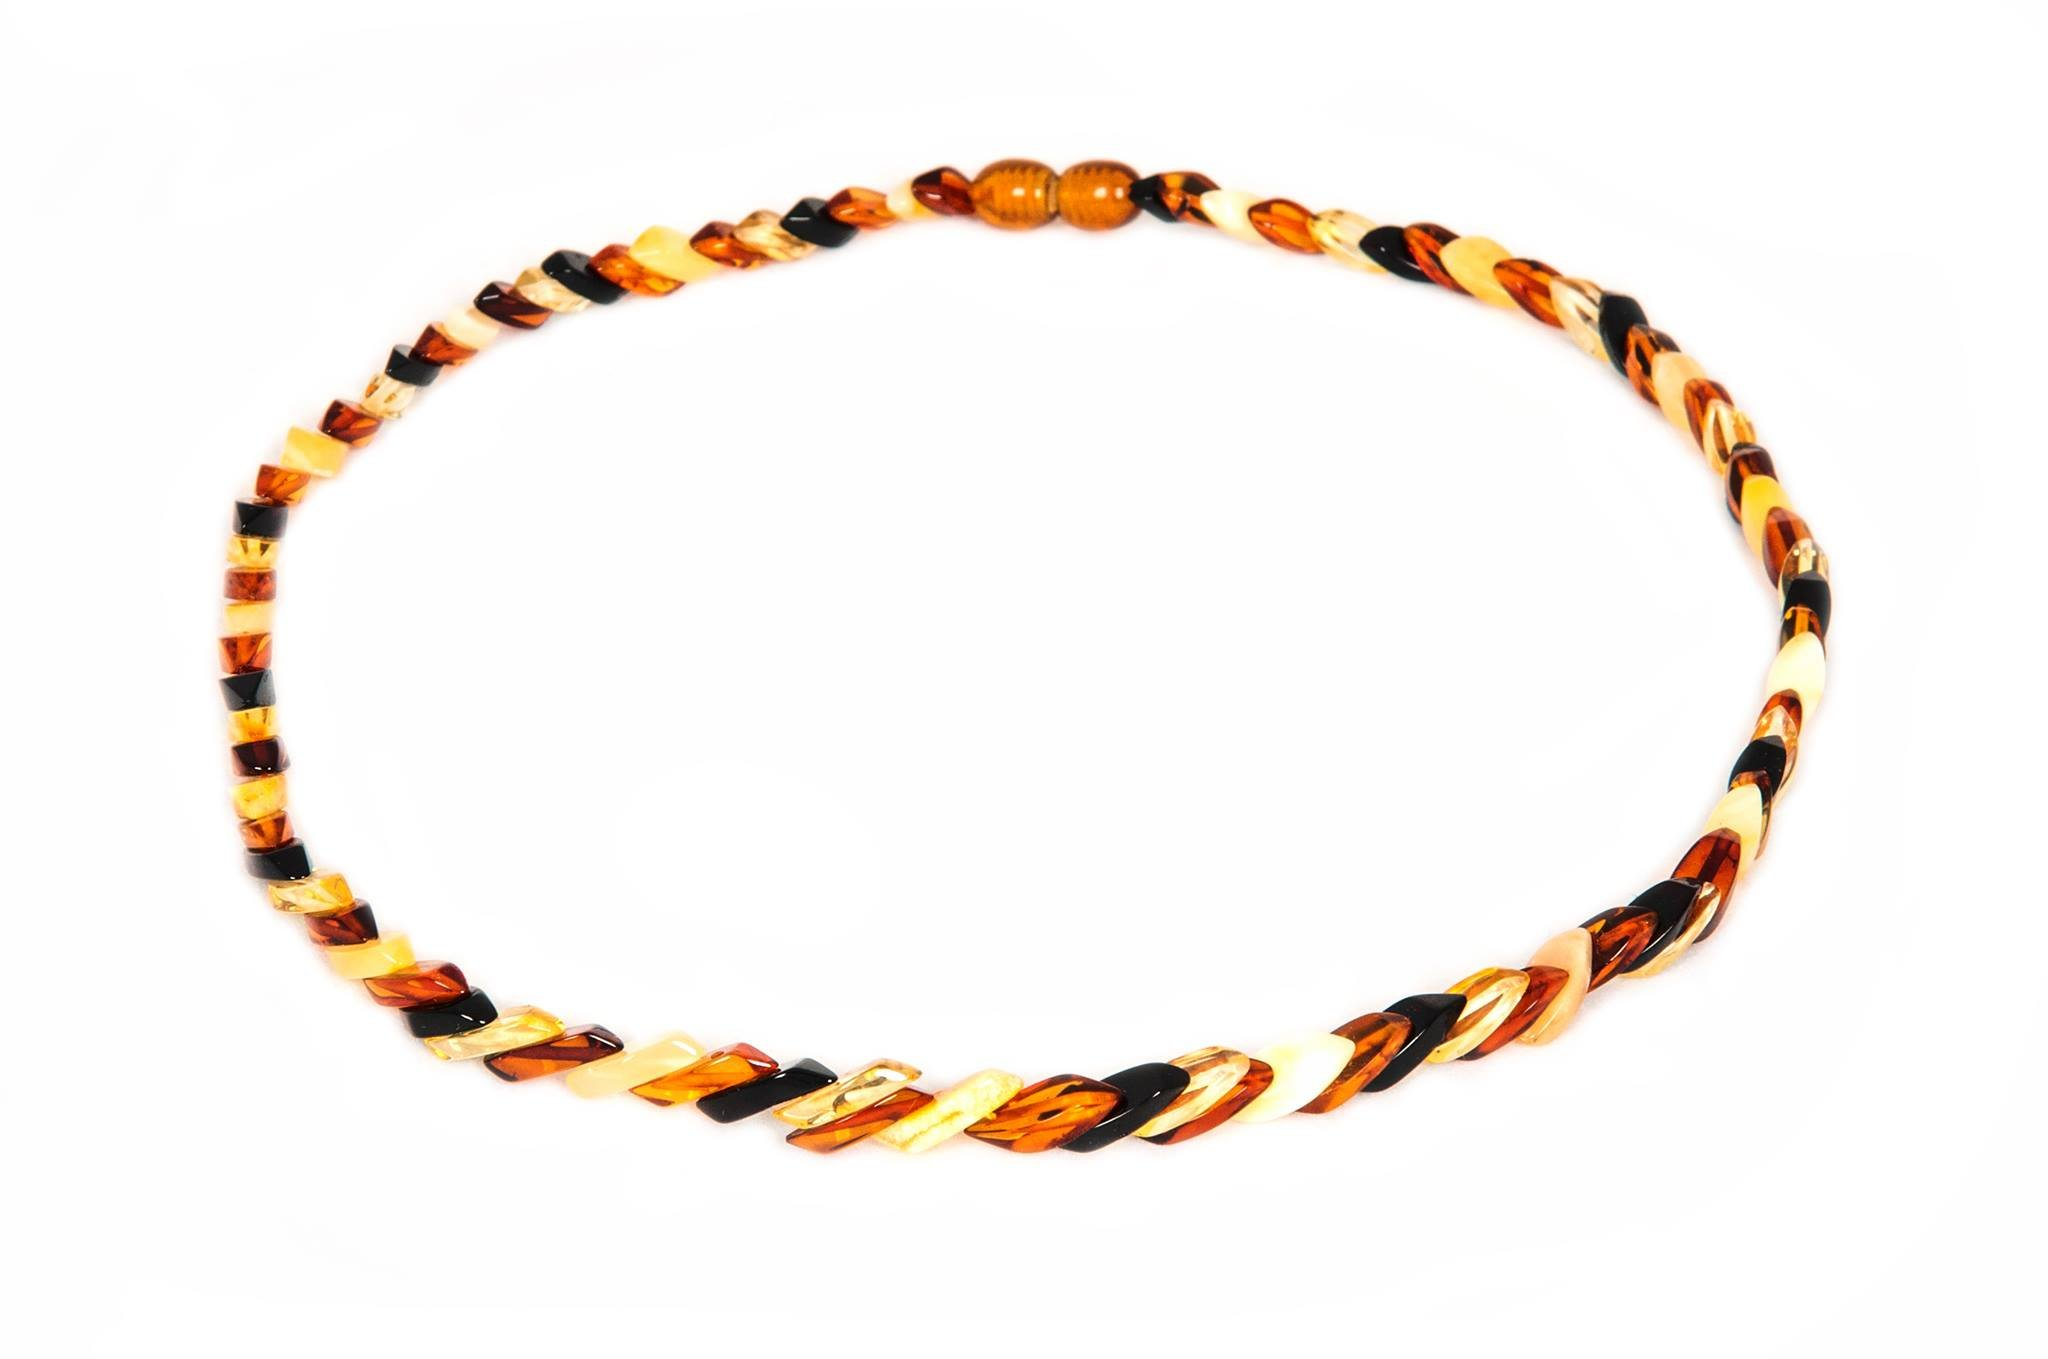 Natural Baltic Amber Necklace for Adults (55CM 21.65INCH)